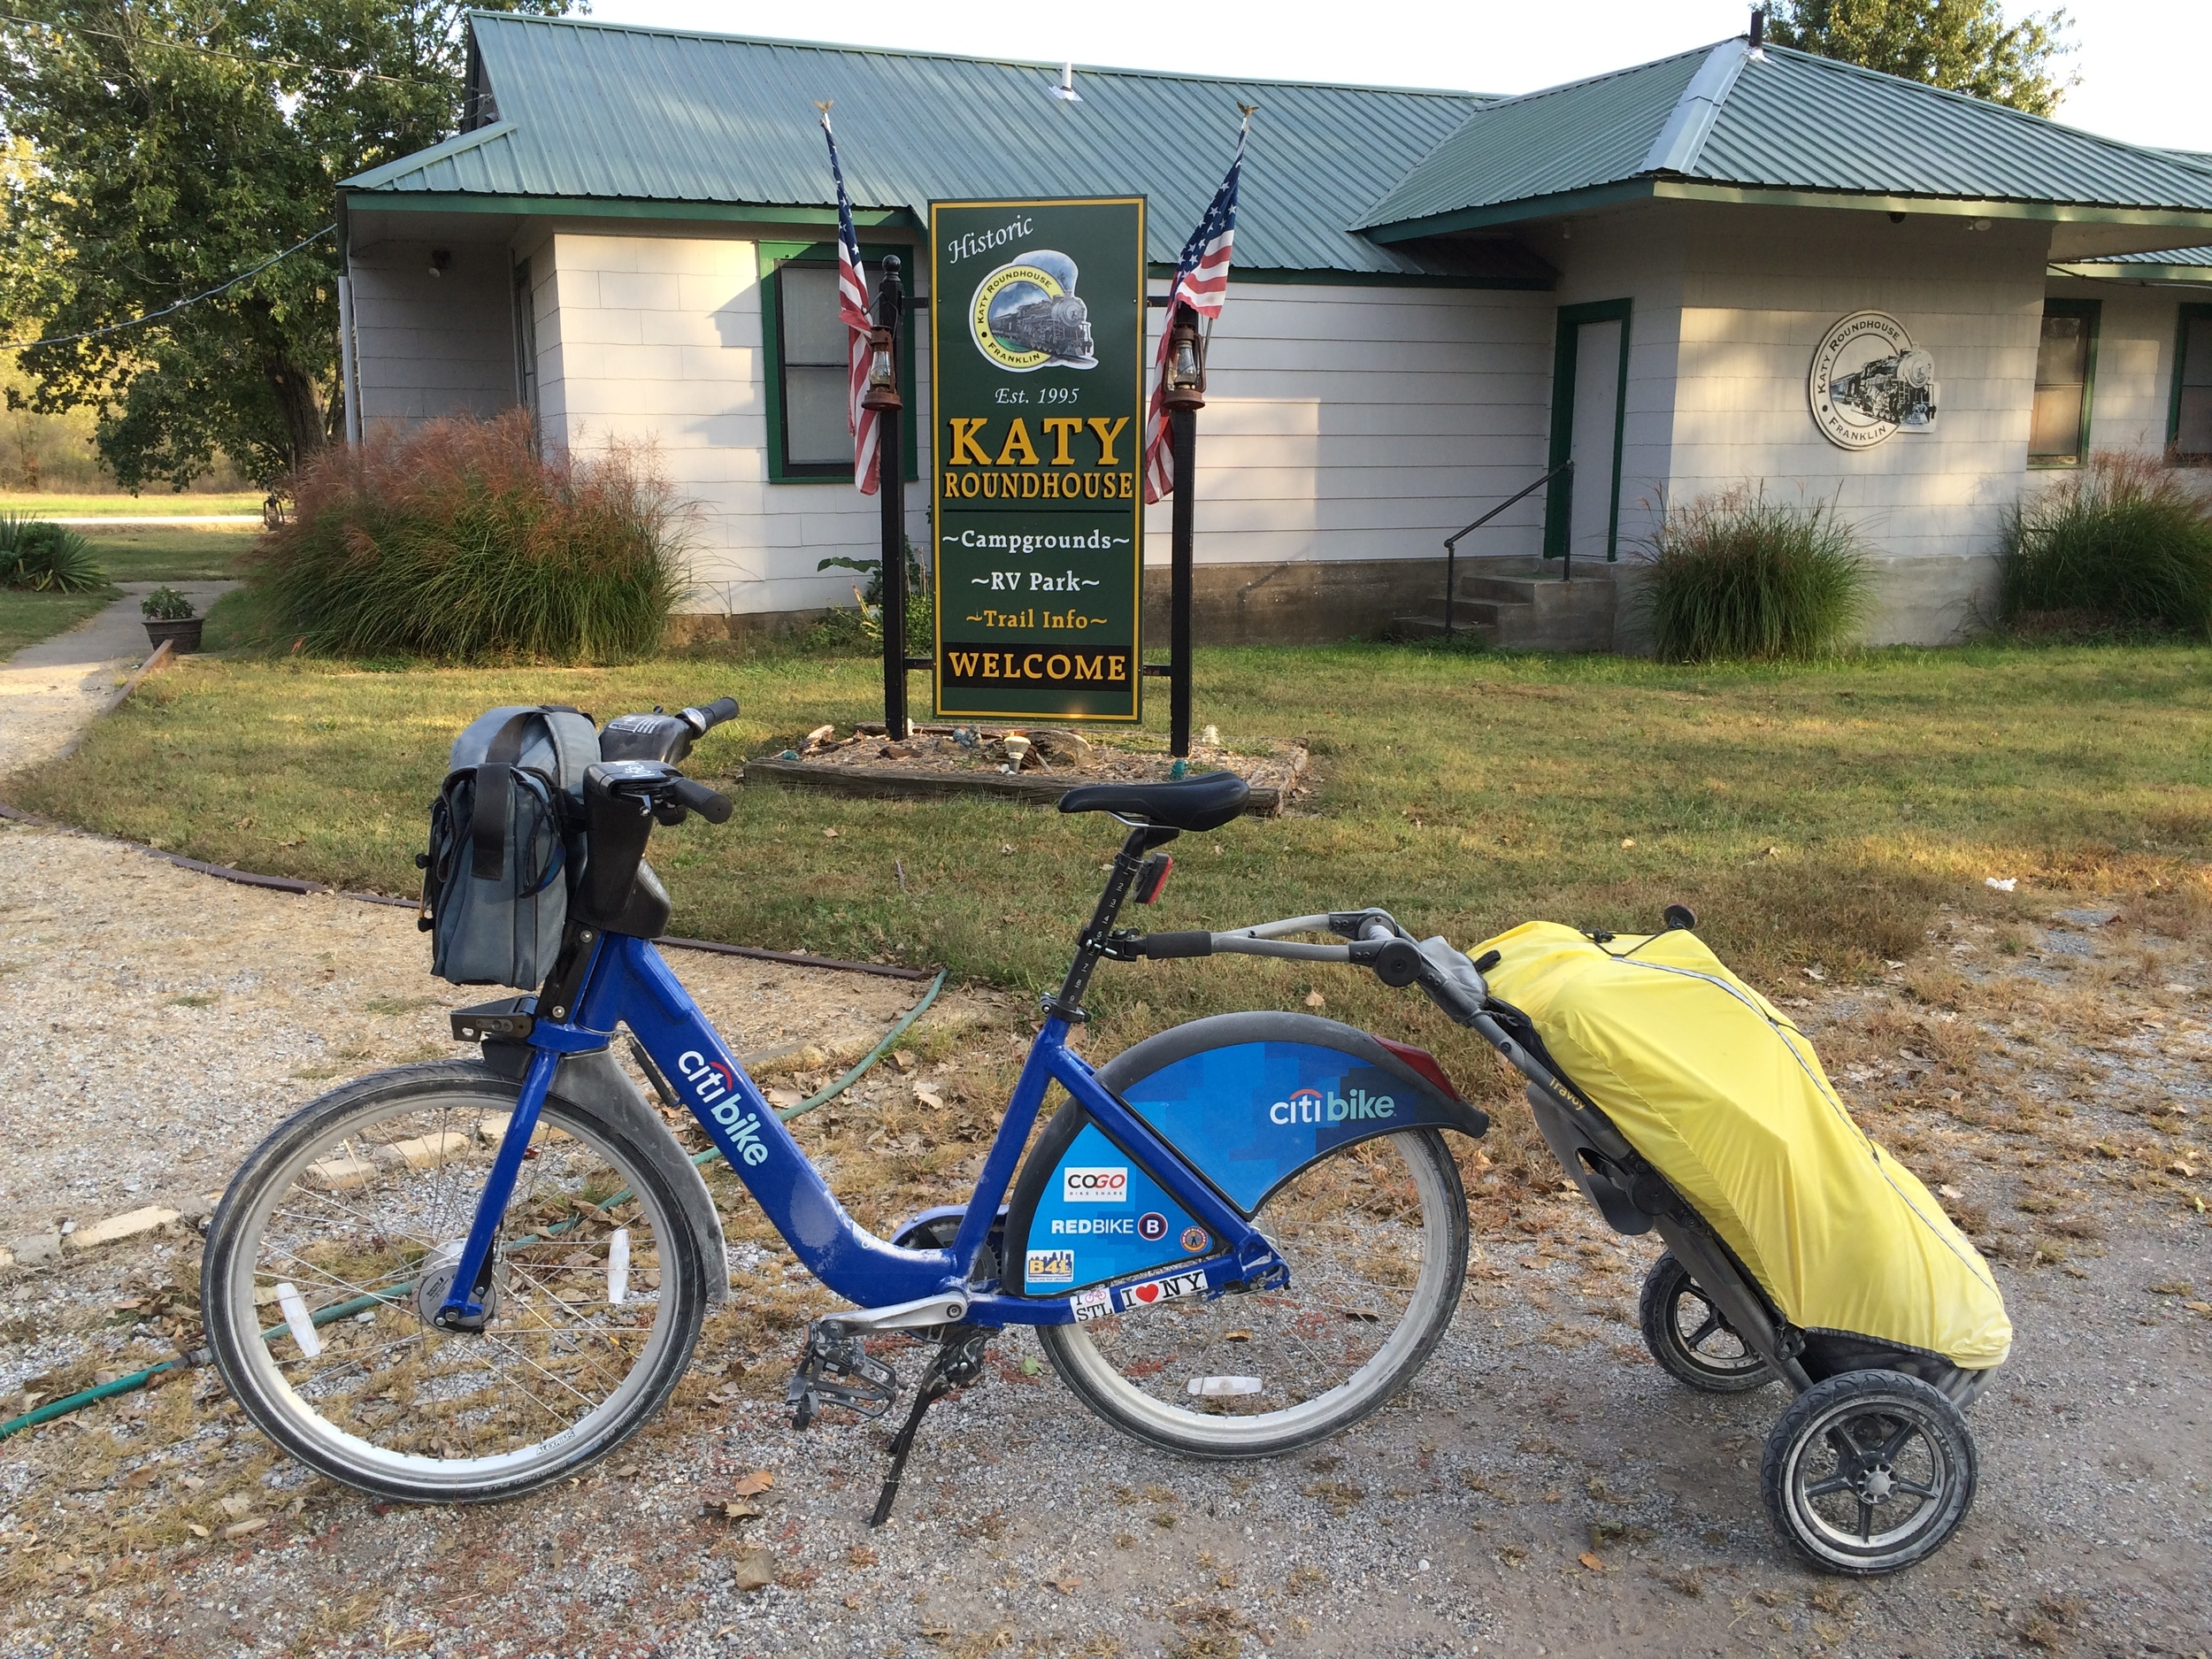 An inexpensive and well-appointed campground right on the trail.